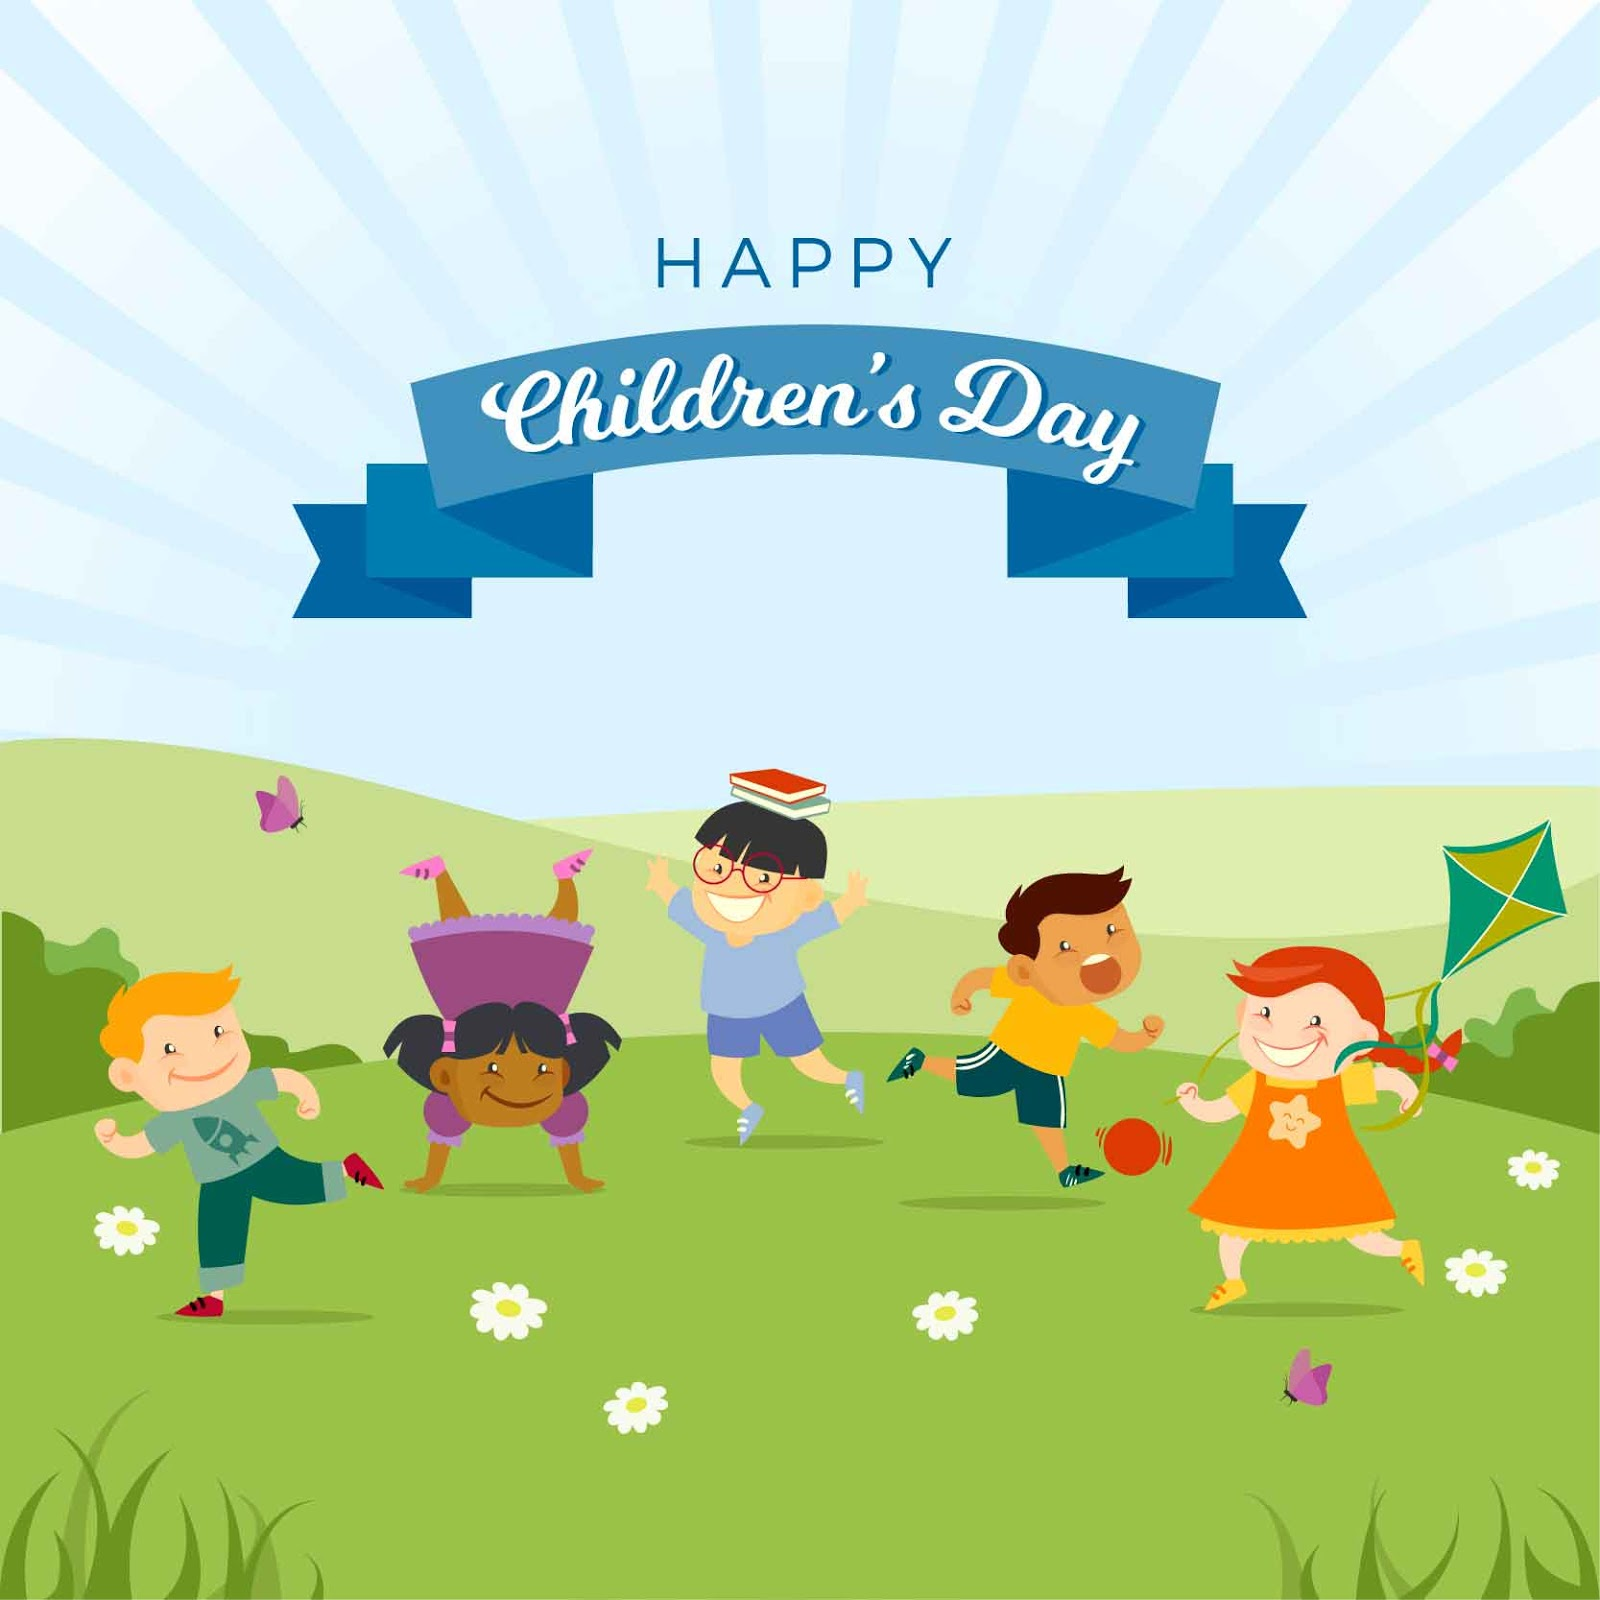 Happy Children's Day Image